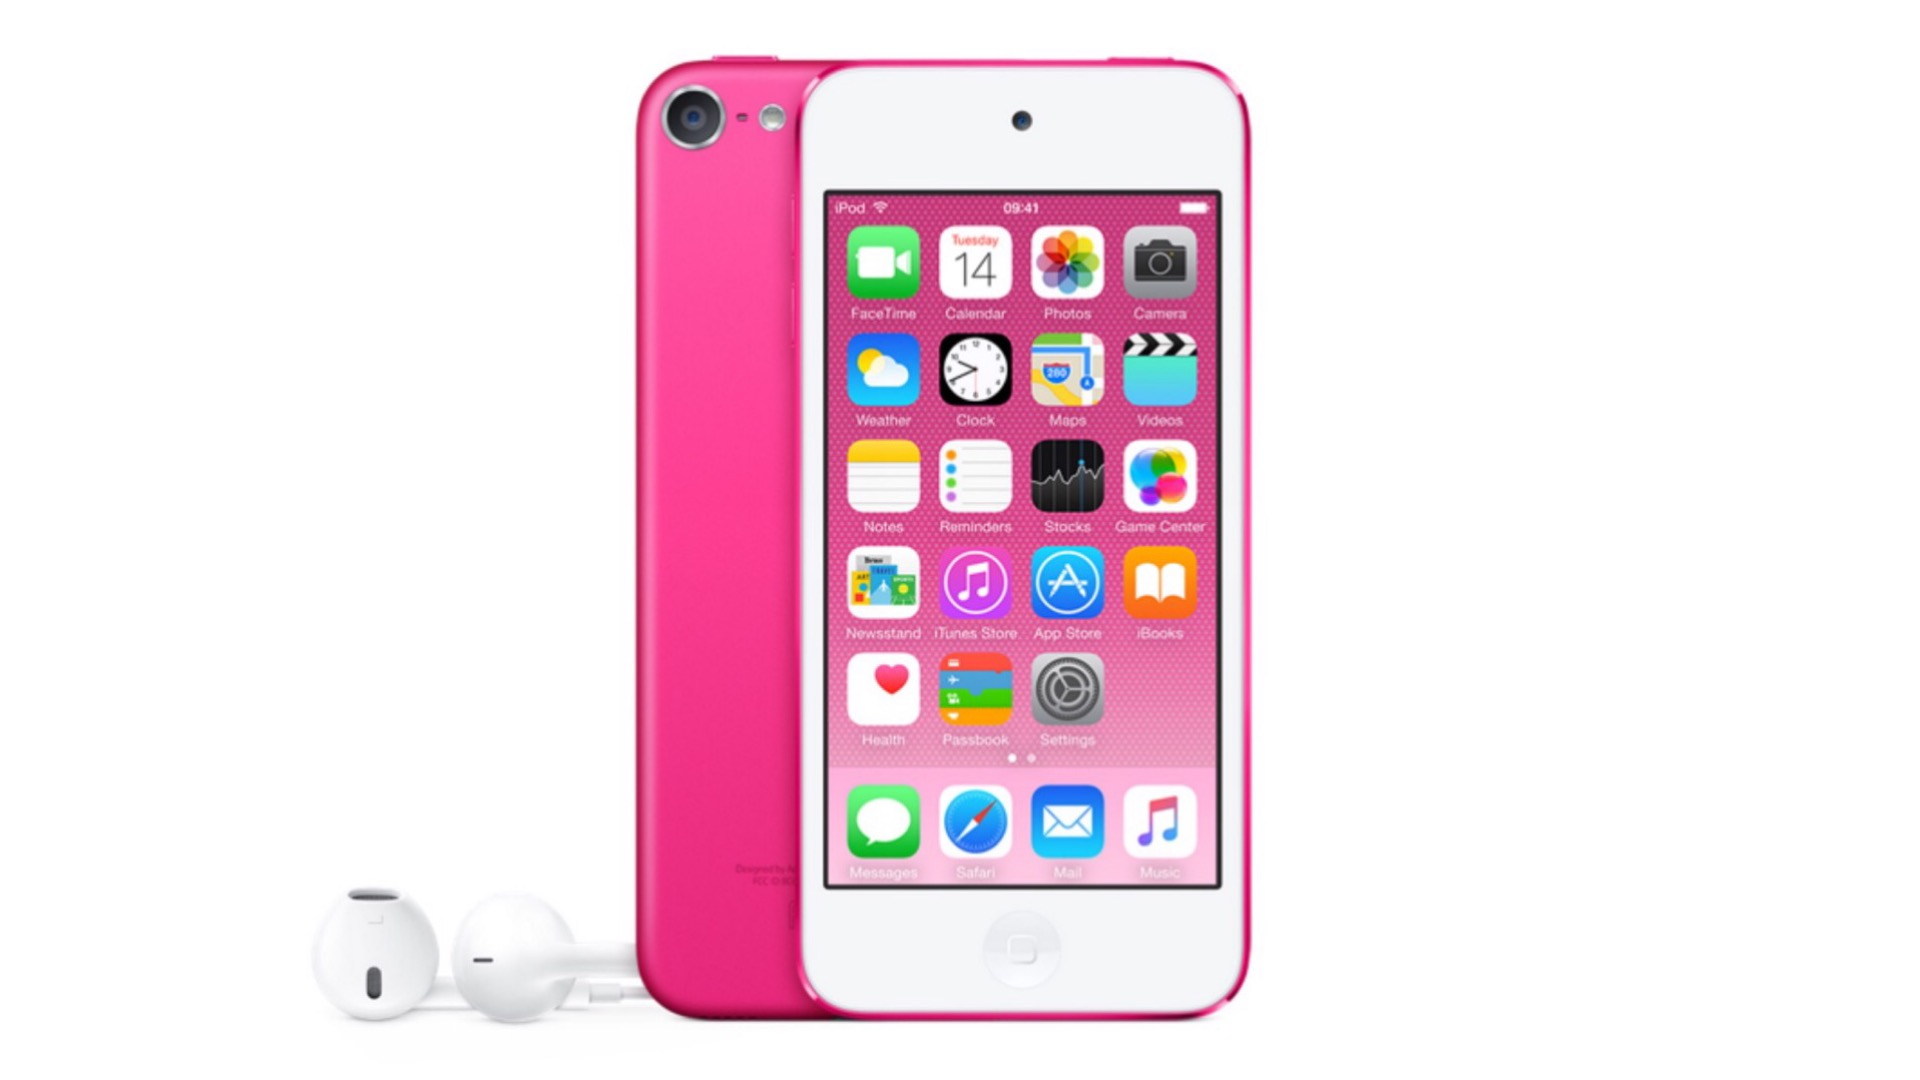 Apple Possibly to Release Bright Pink Model of iPhone 5SE